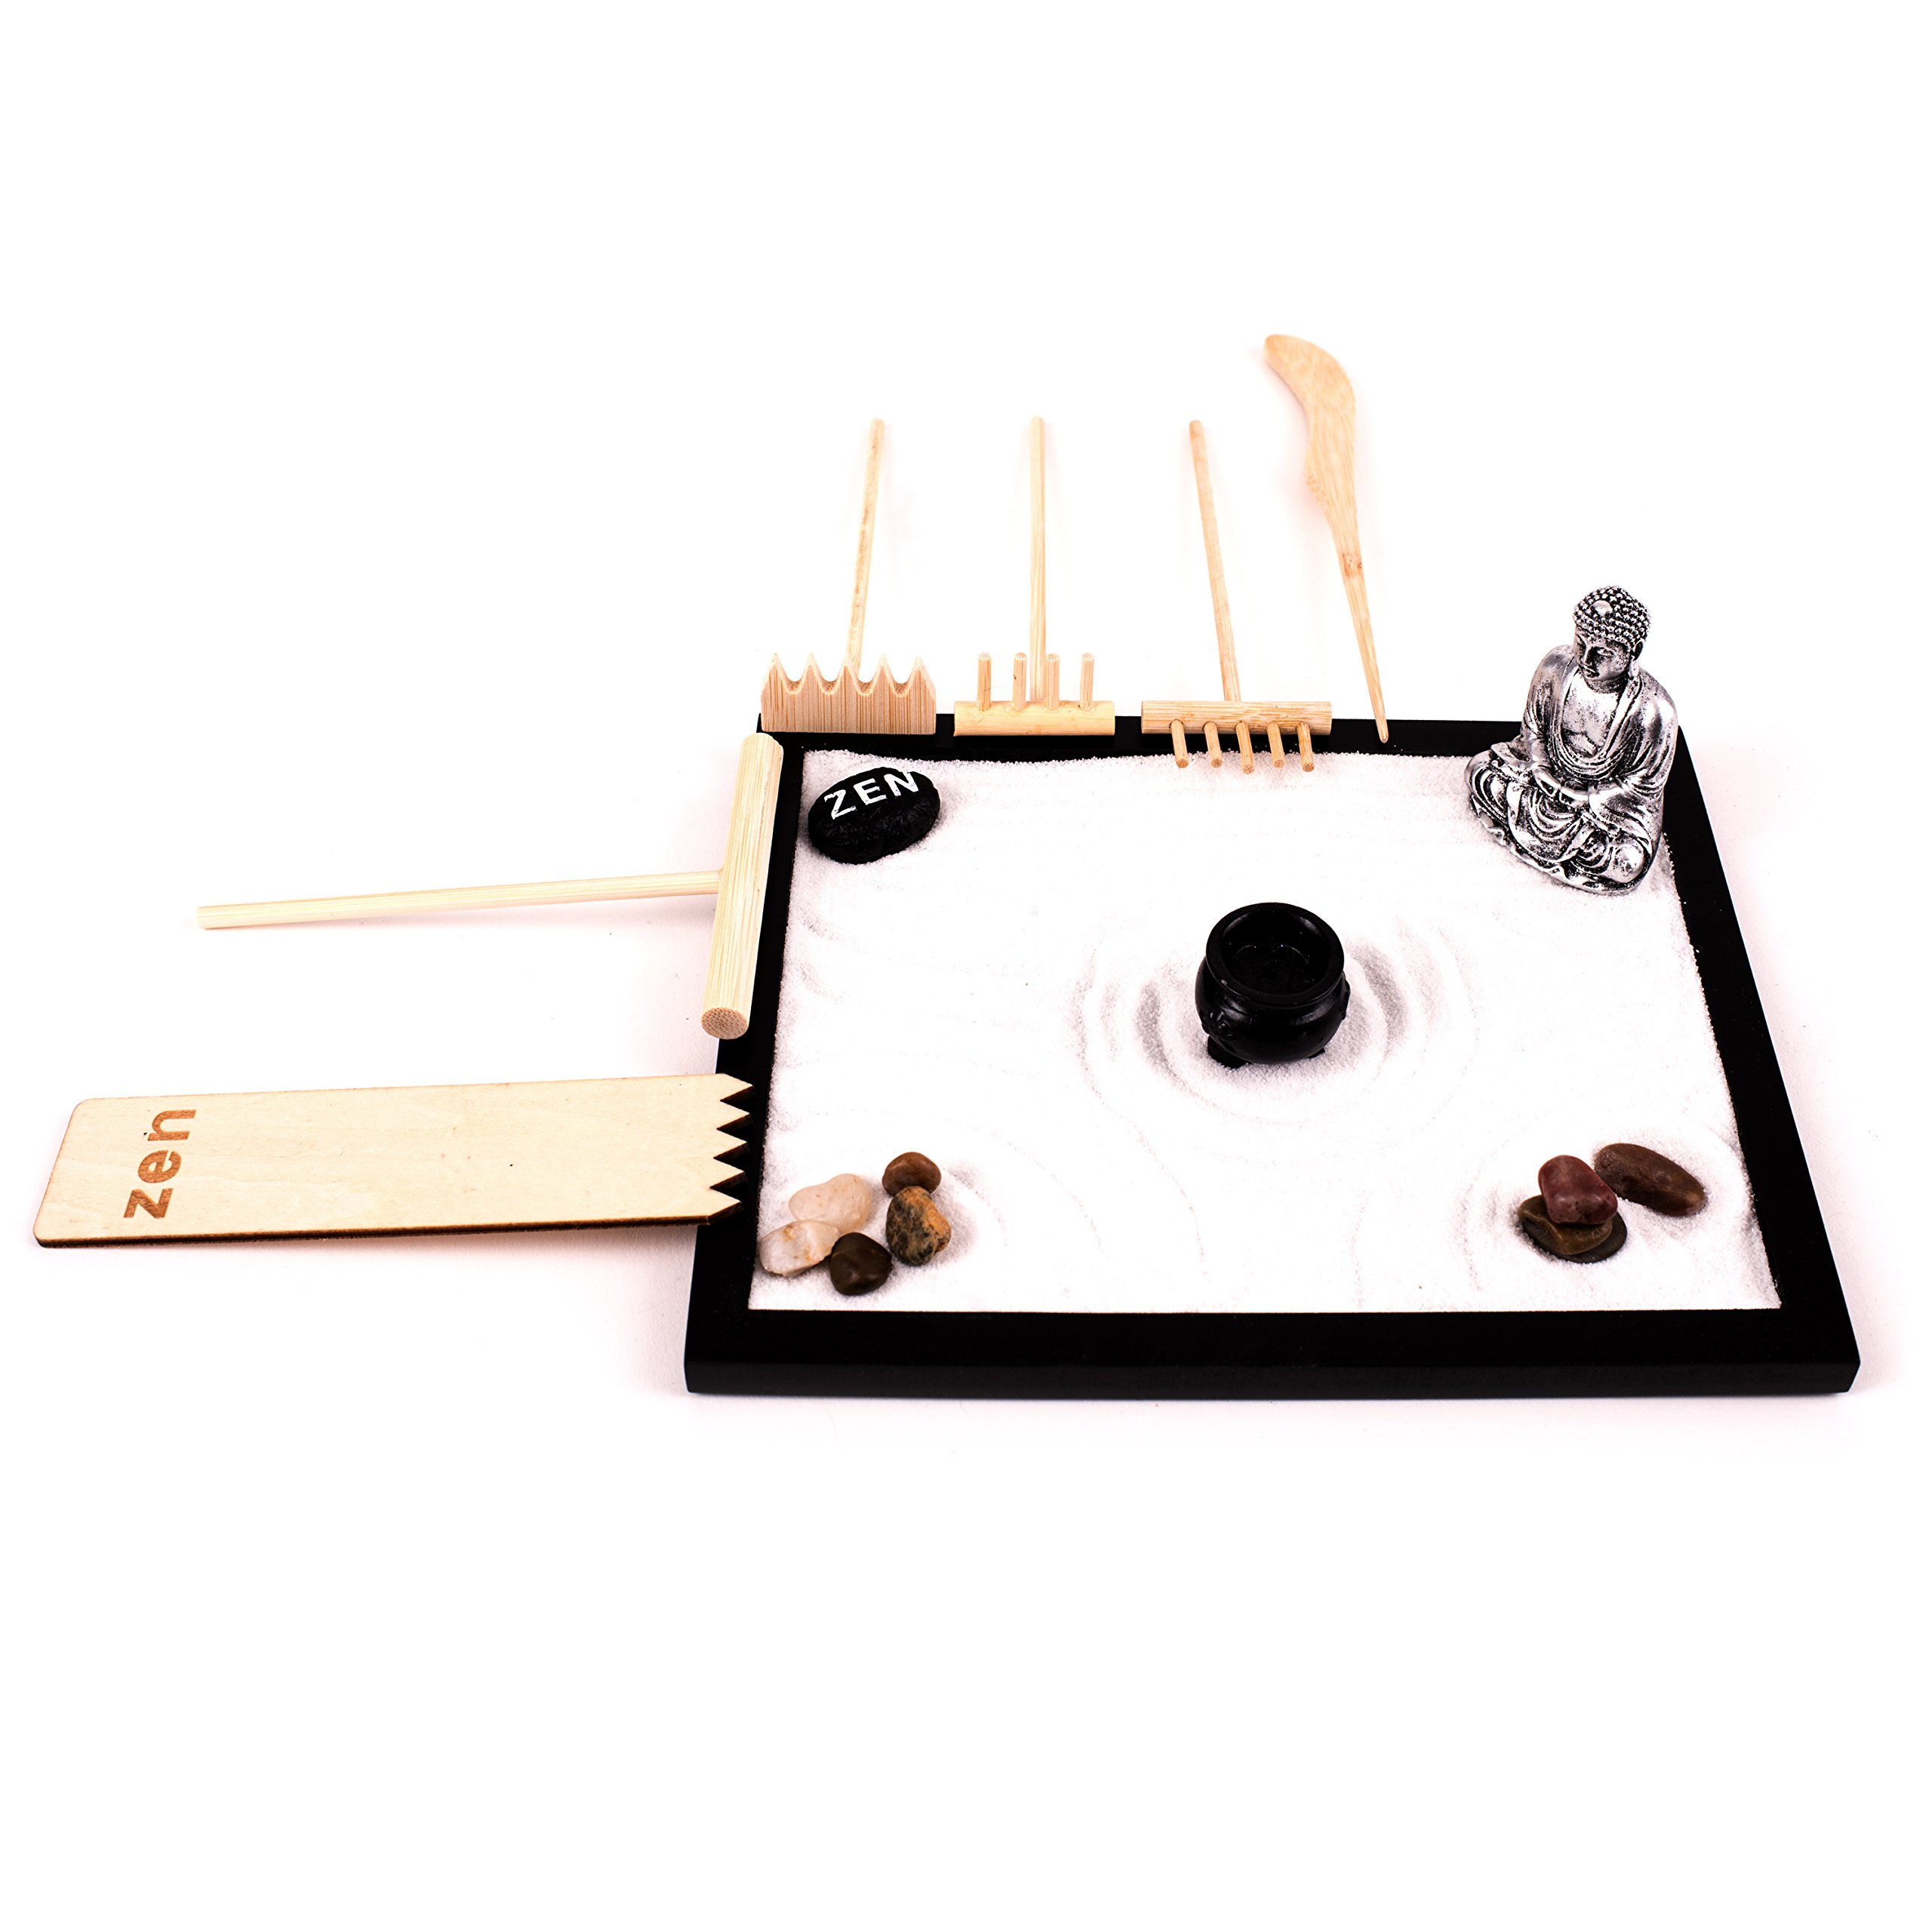 Deluxe Wooden Zen Sand Garden with 6 Types of Rakes, 2 Meditation Figurines, Sand and Rocks (Model# RG-003) by Wonderful Zen